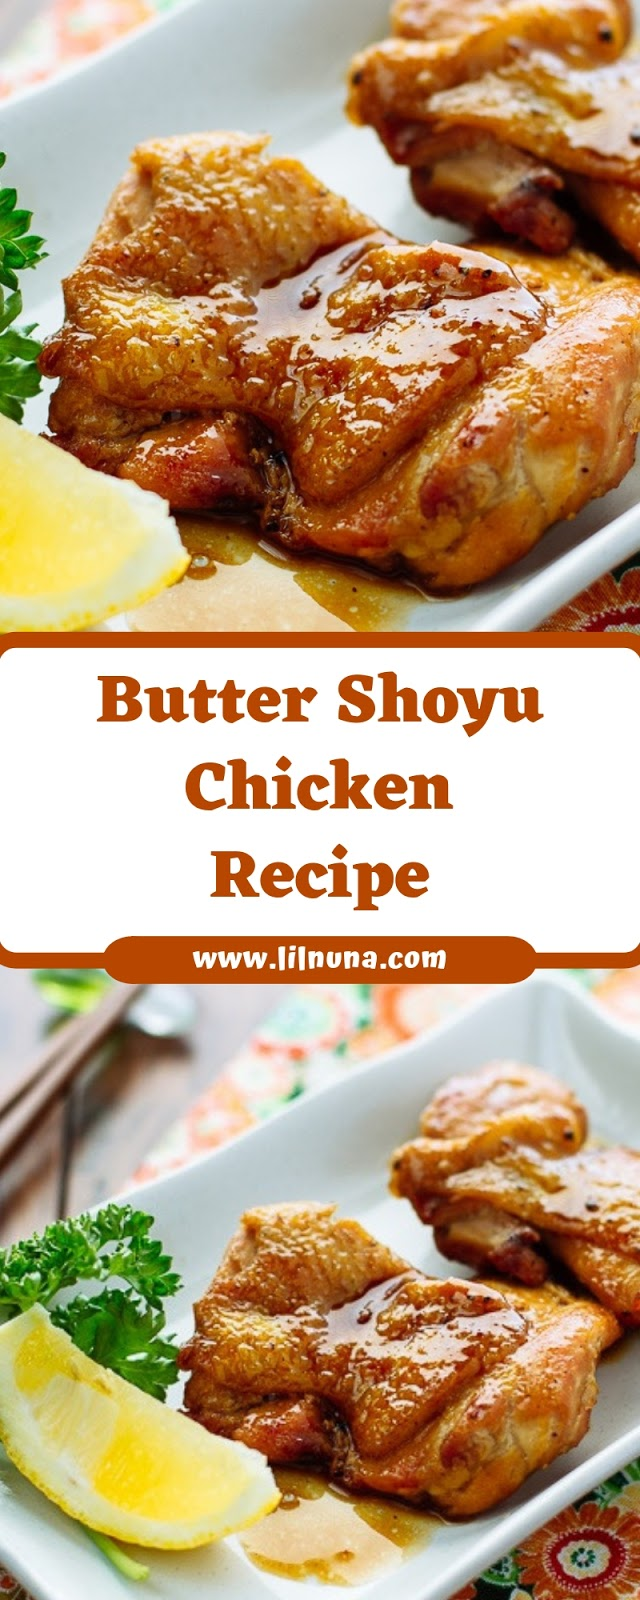 Butter Shoyu Chicken  Recipe